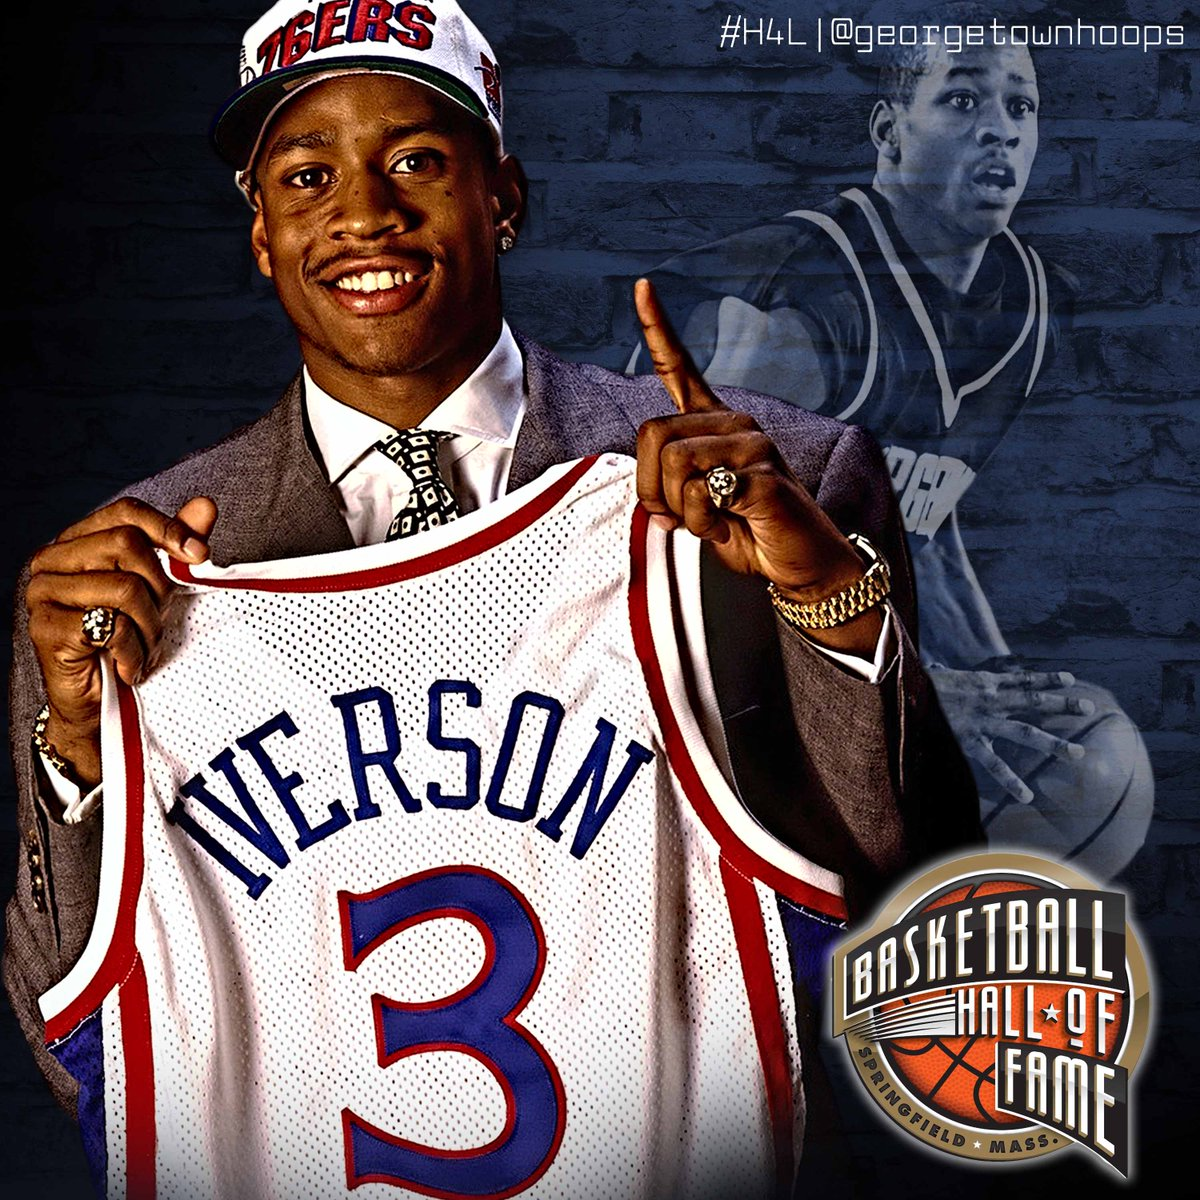 Hall of Famer. Congratulations, @alleniverson! #H4L #WeAreGeorgetown https://t.co/cYETAkTh84